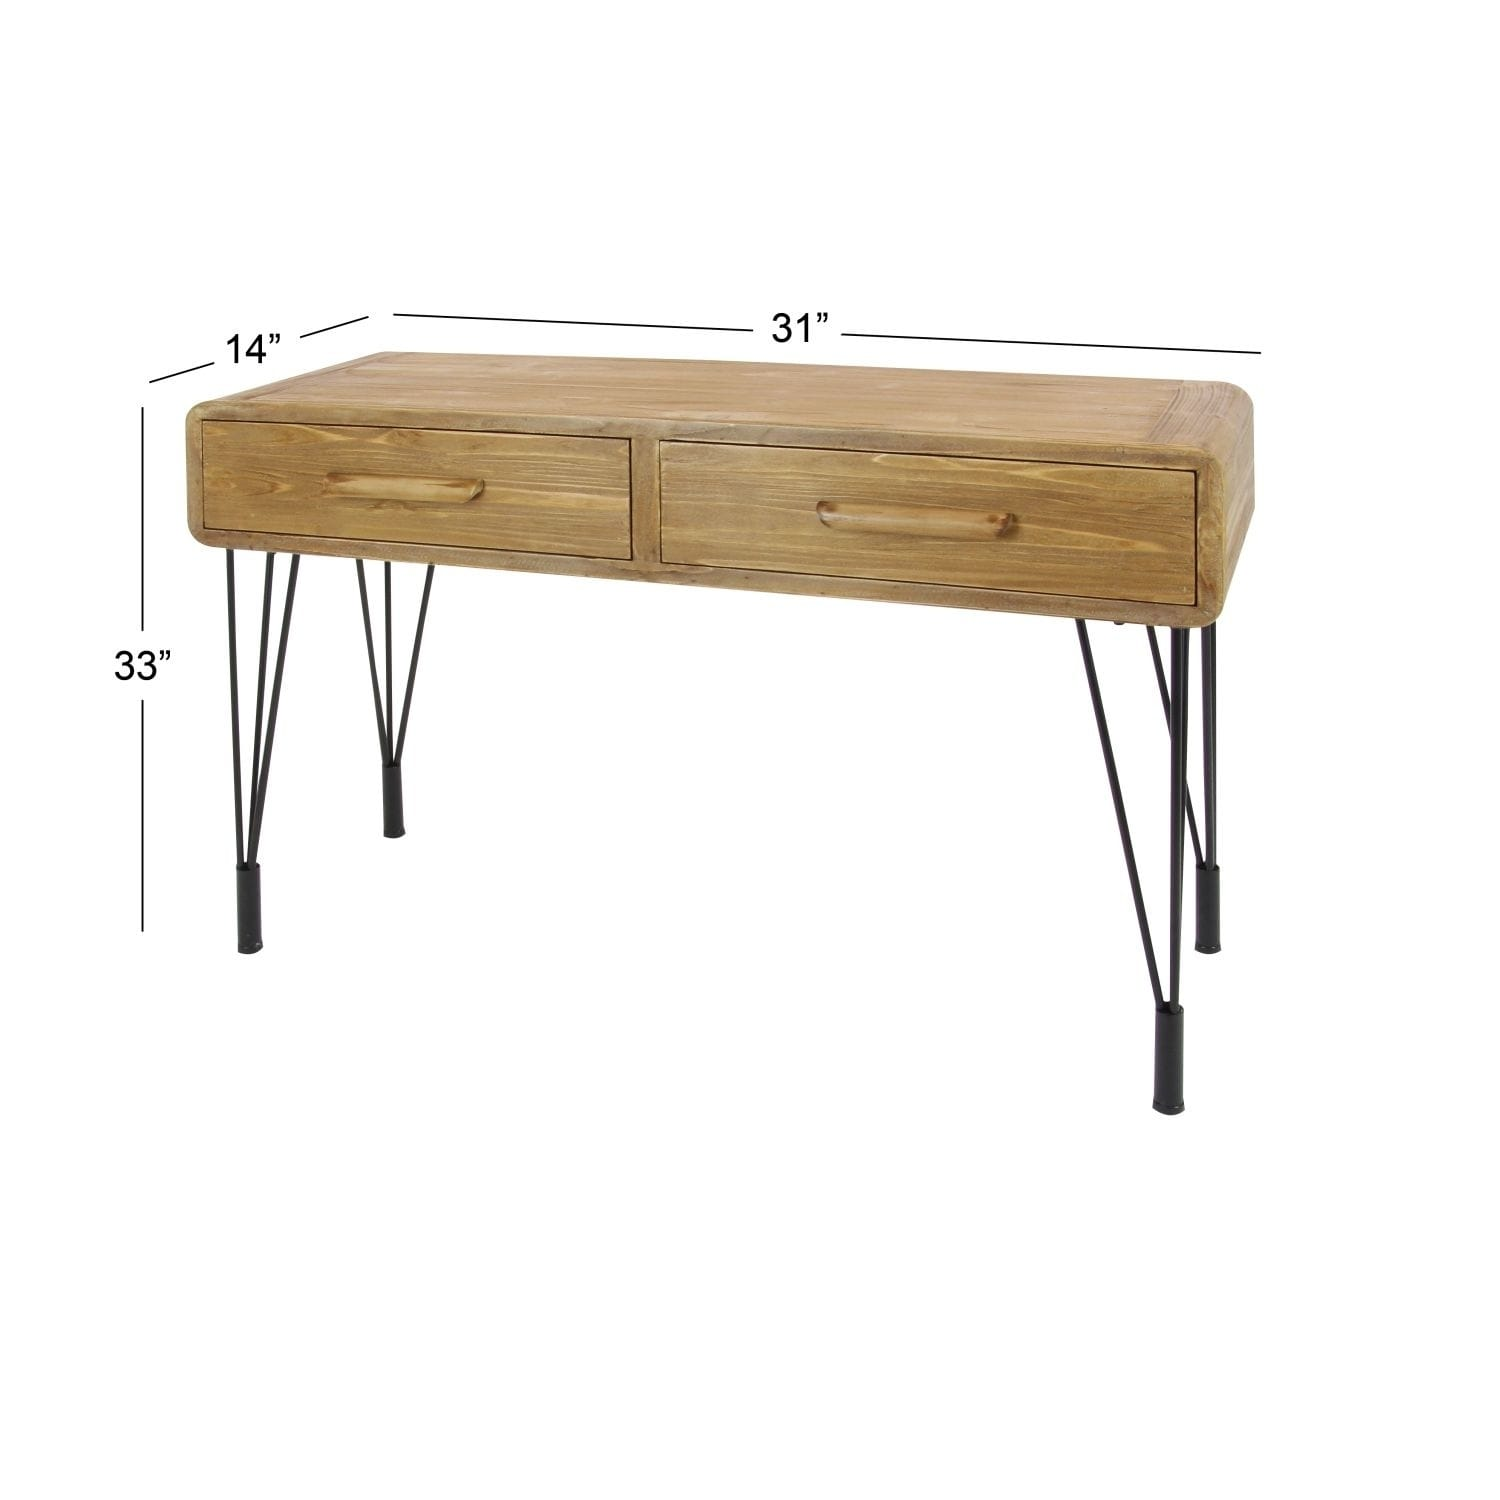 Studio 350 Wood Metal Console Table 45 Inches Wide 30 High Free Shipping Today 17240633